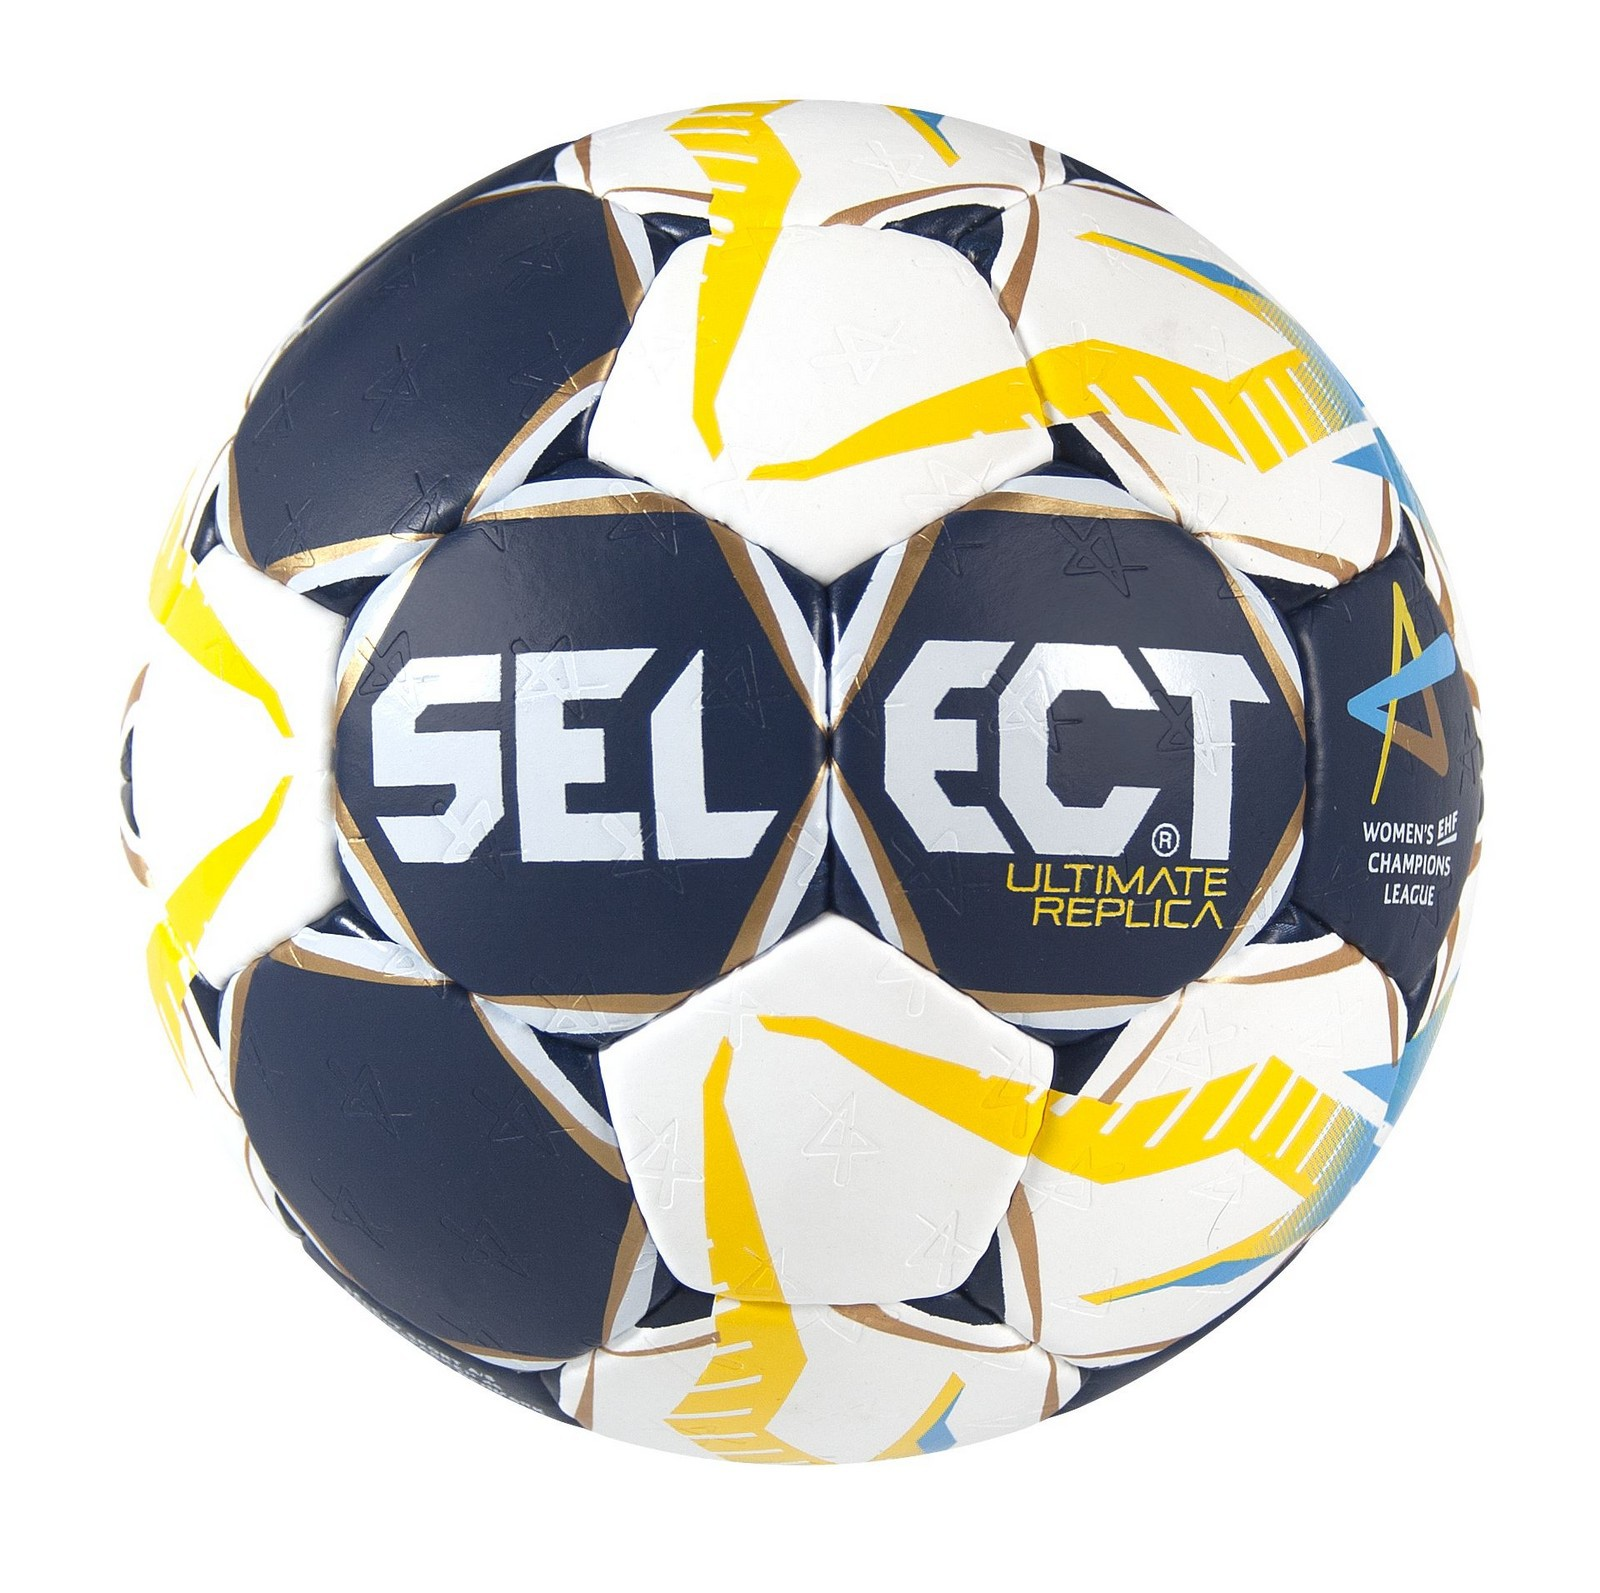 Ultimate Replica Champions League 2017 - Select